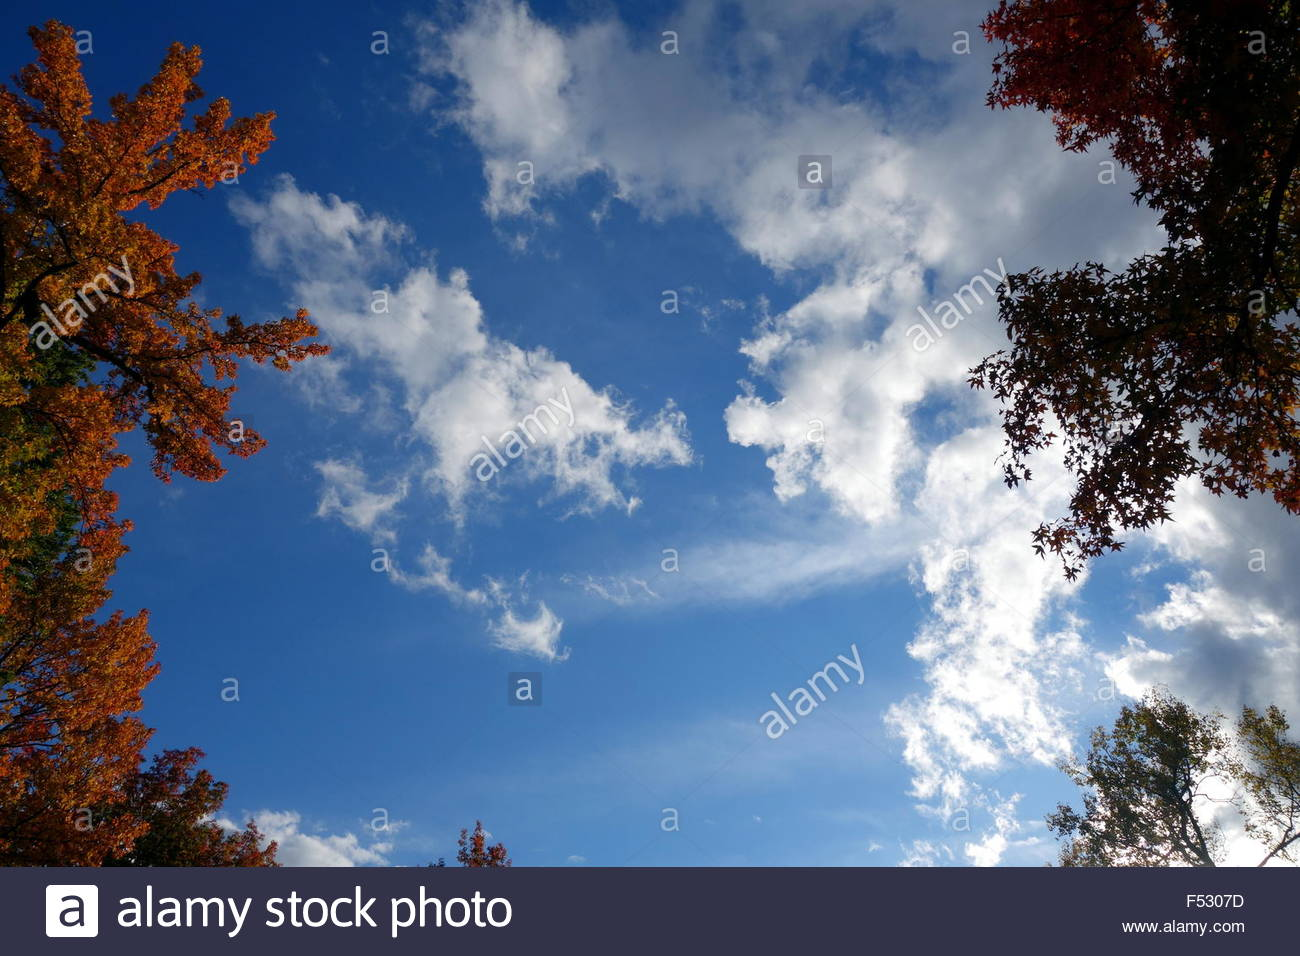 Fall foliage surrounding blue cloudy sky - Stock Image